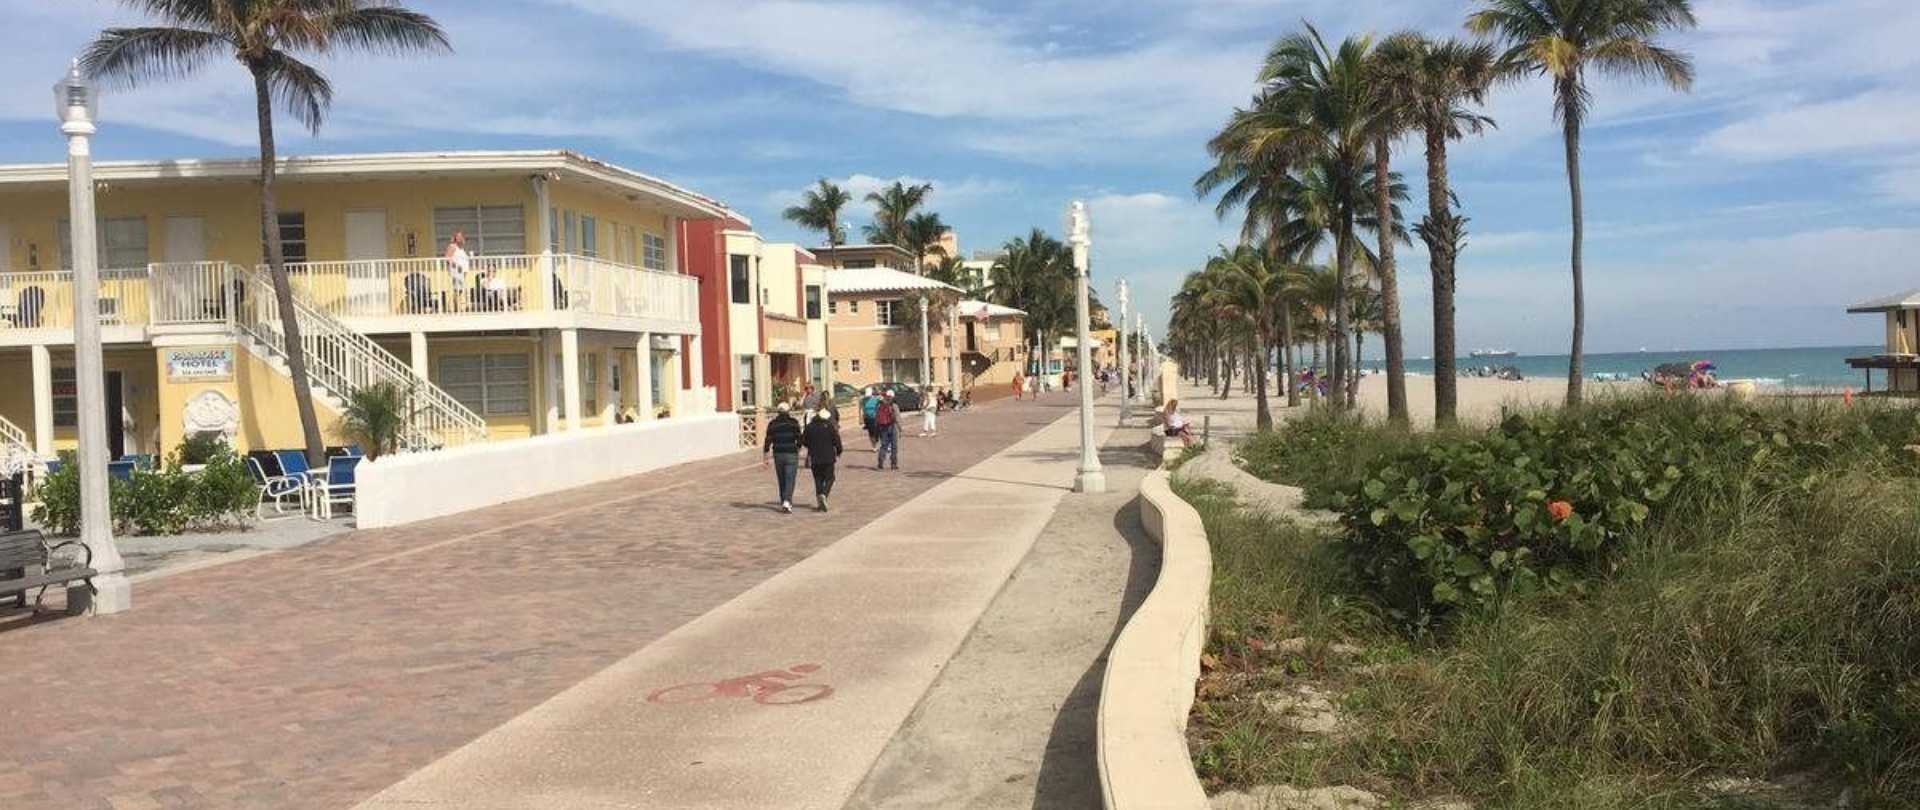 Hollywood Beach Fl Chamber Of Commerce